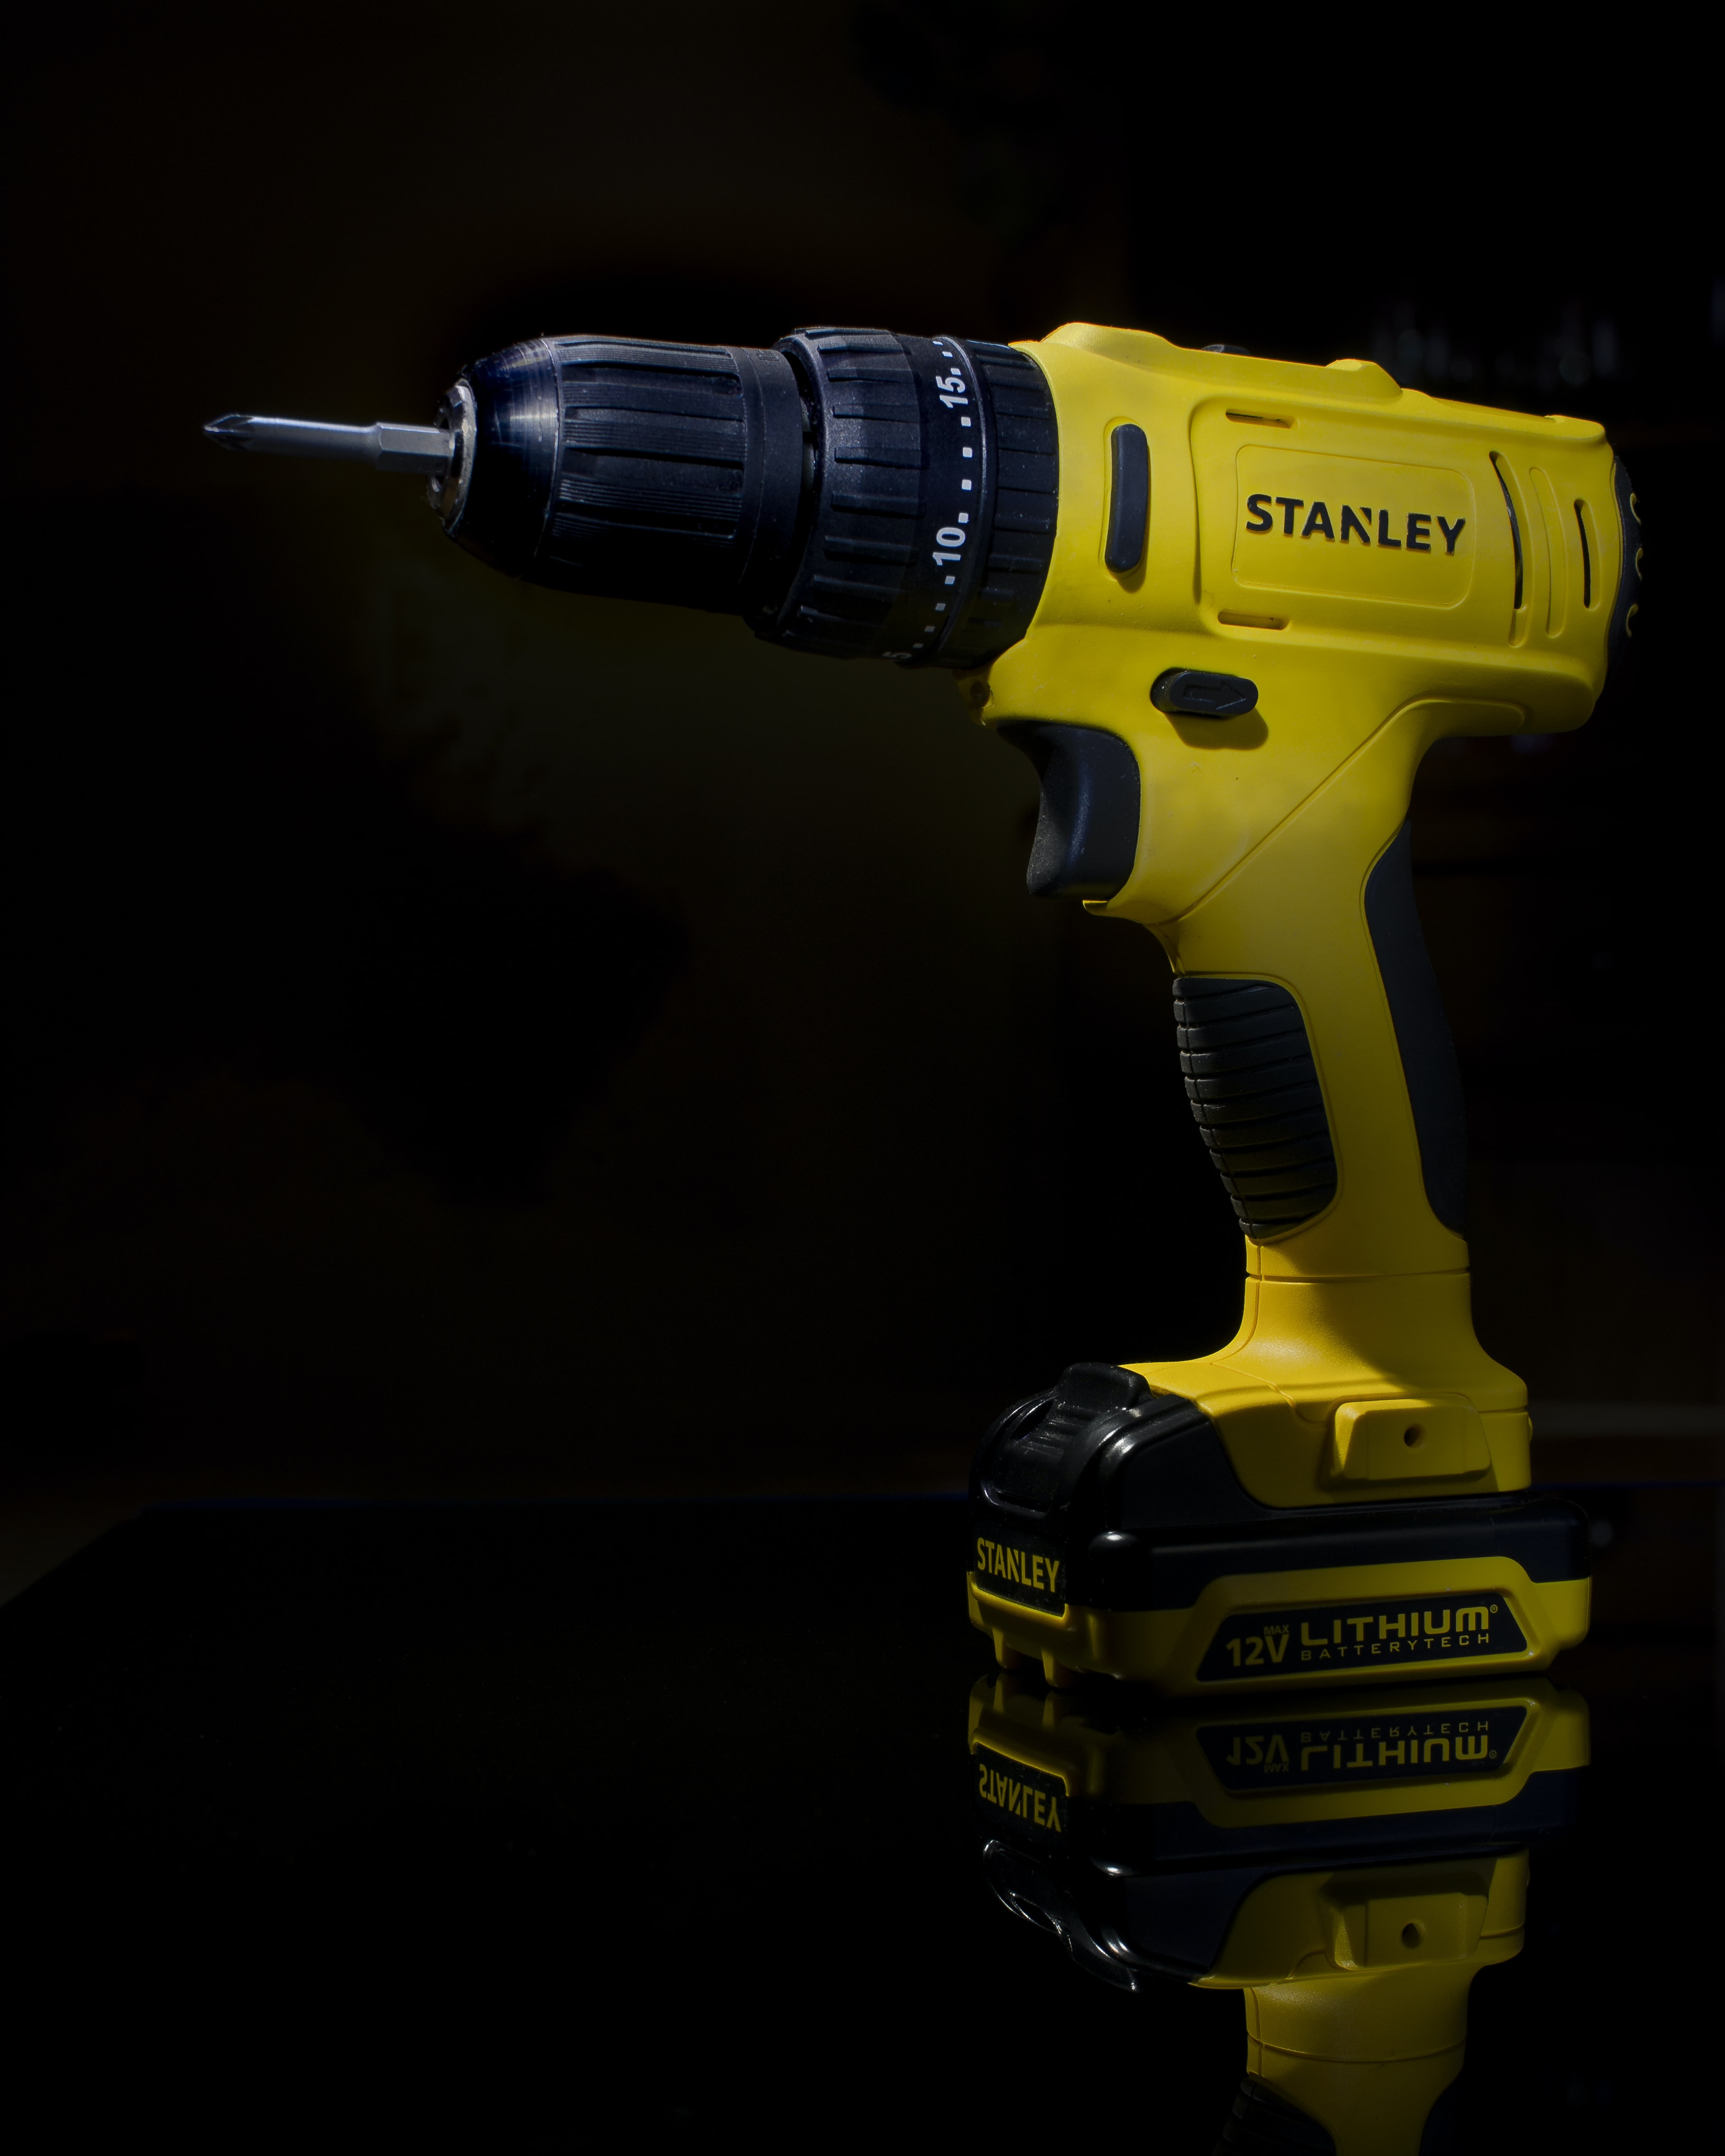 yellow and black Stanley cordless hand drill